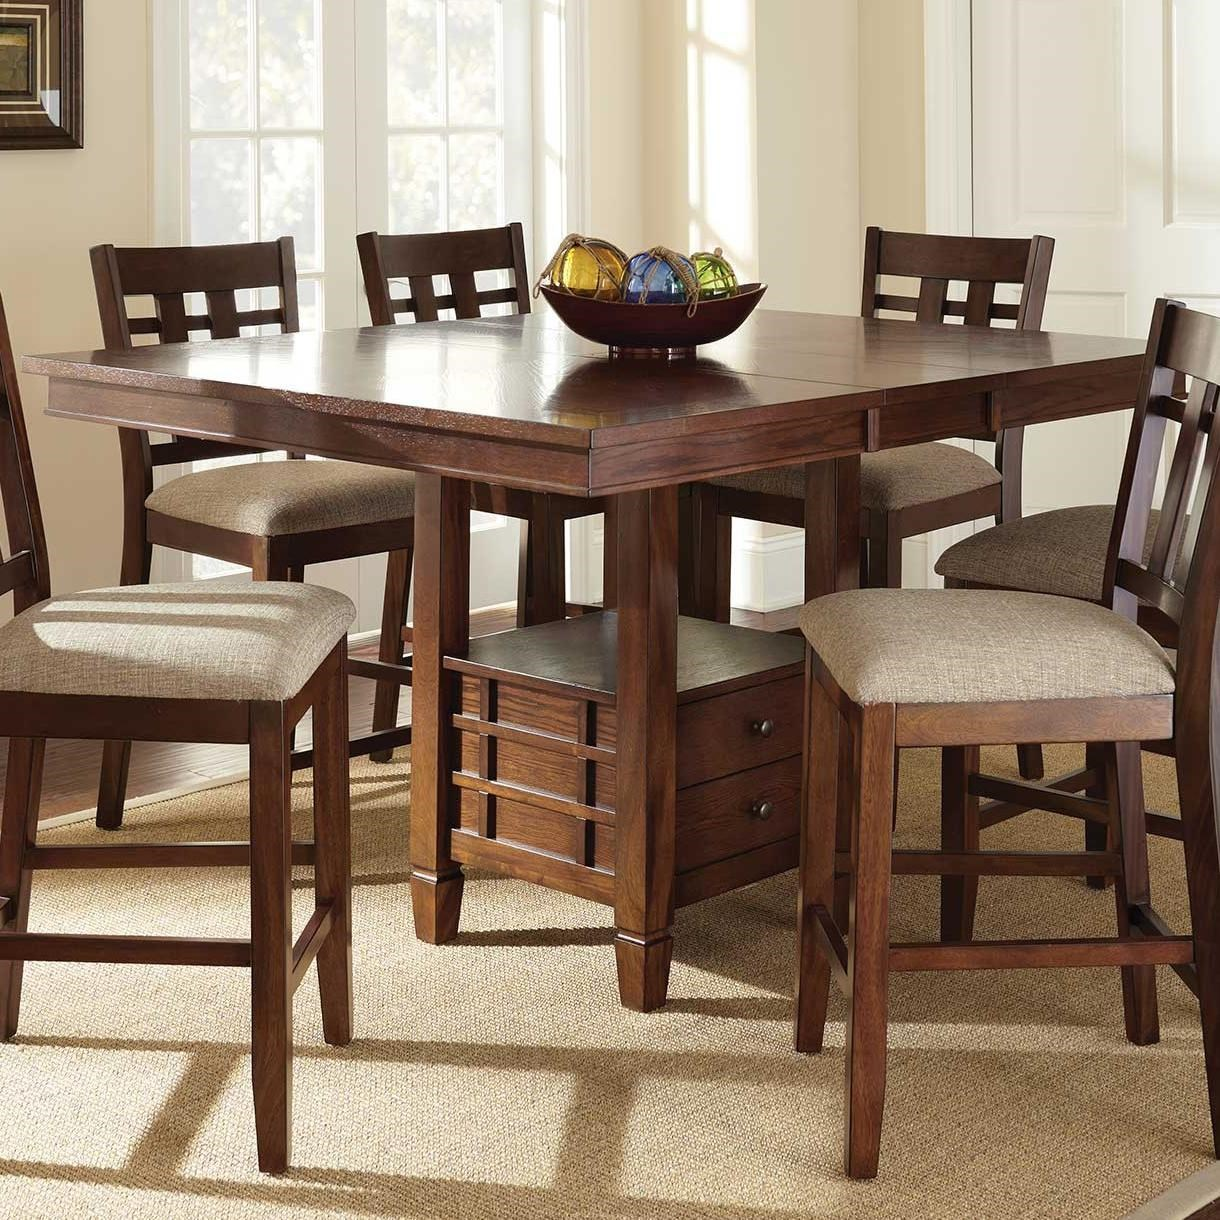 48 Square Dining Room Table: Steve Silver Bolton Storage Counter Table